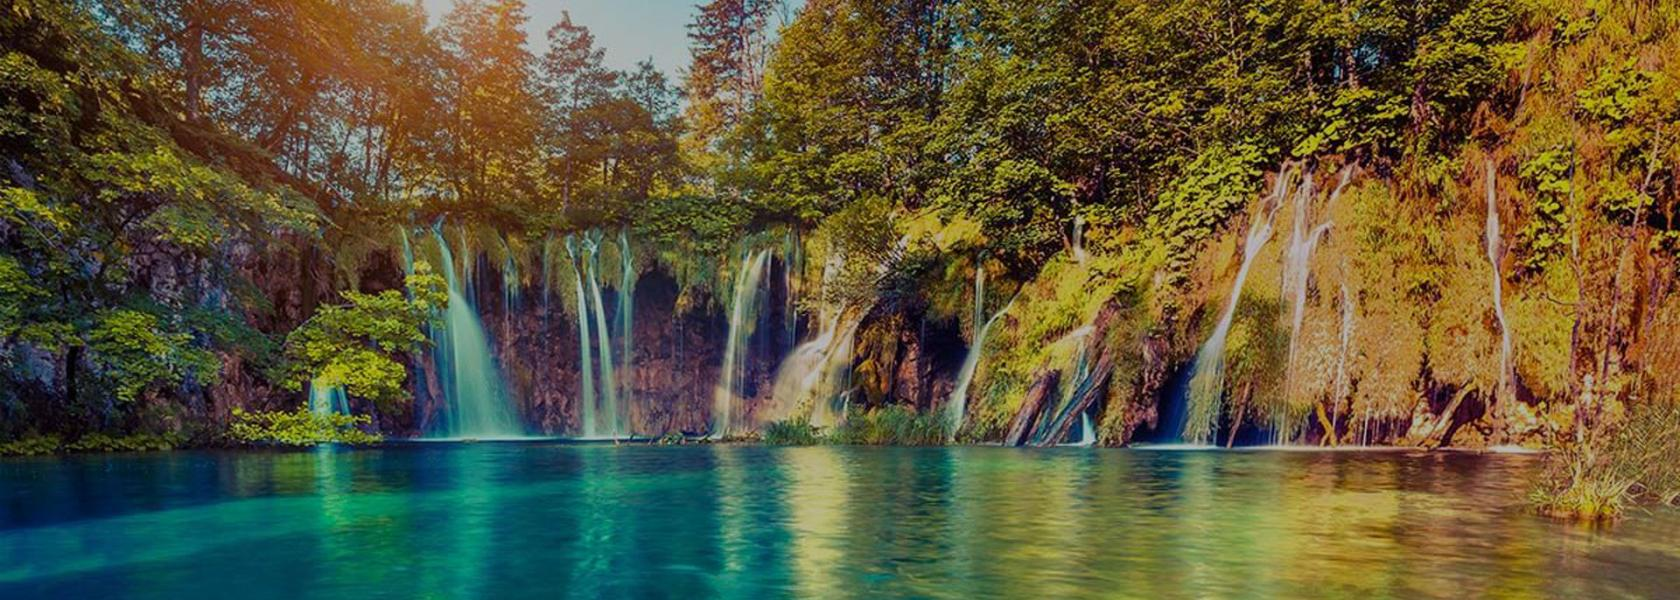 Natural treasures of Croatia